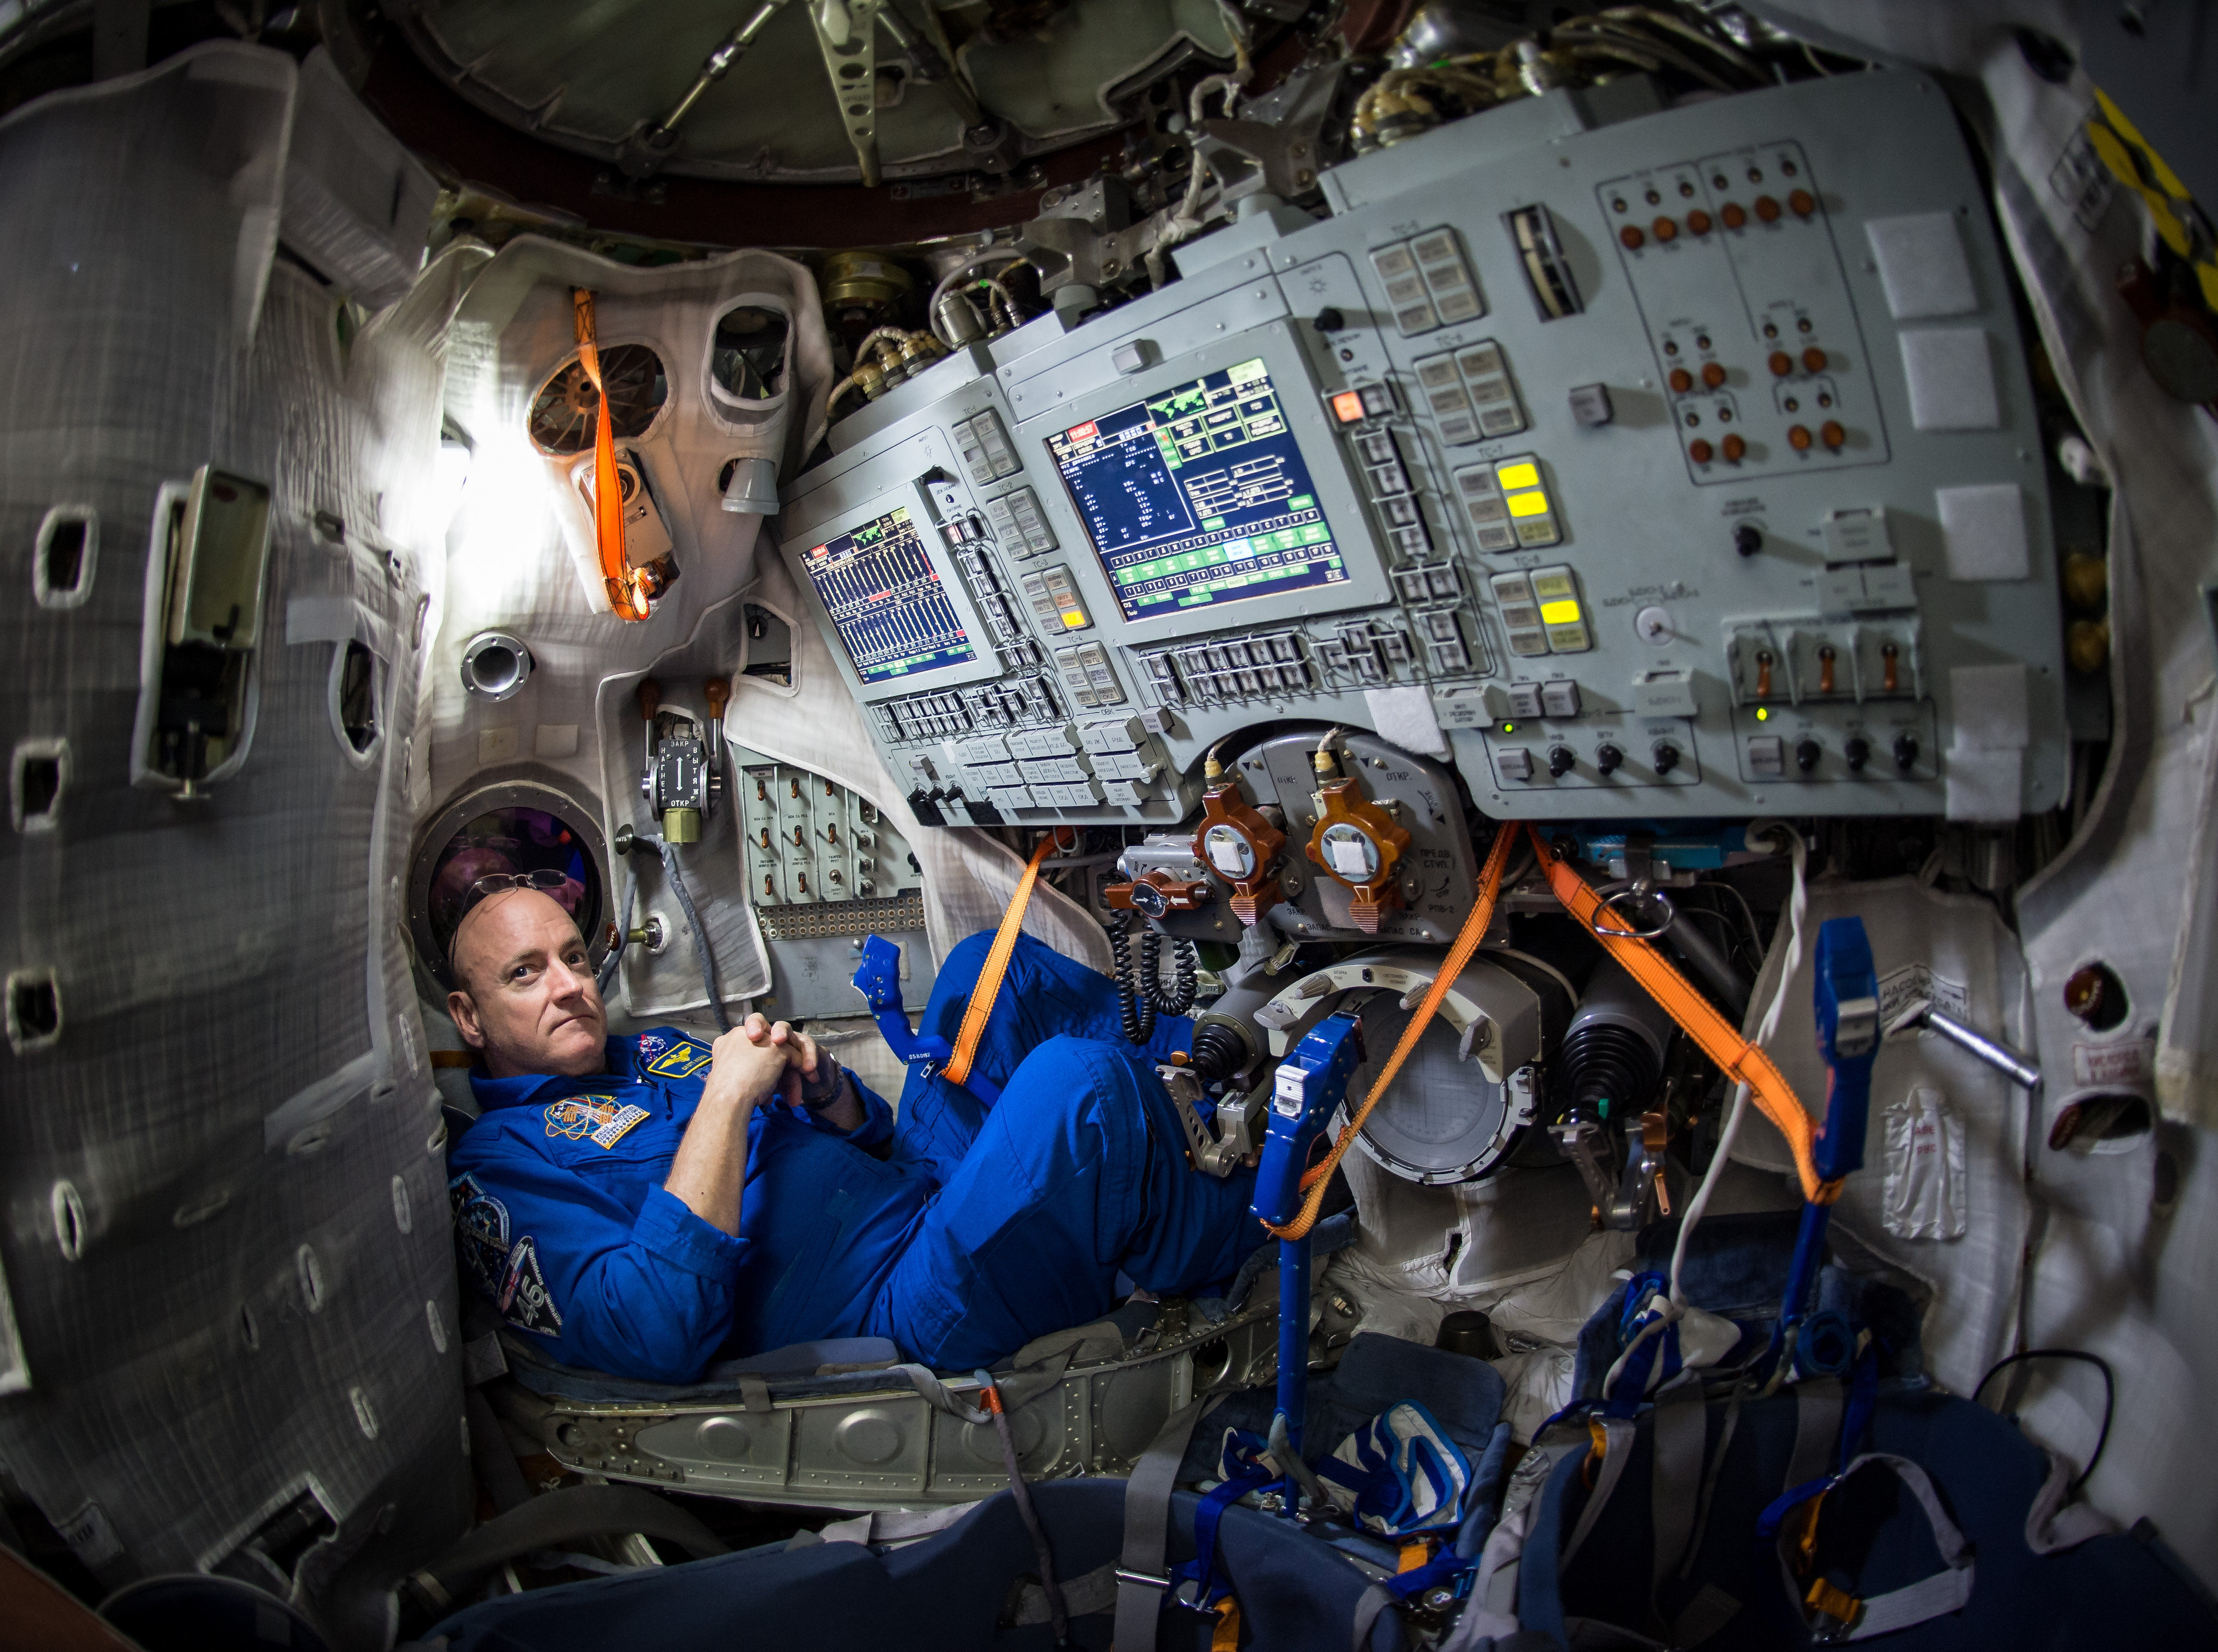 NASA astronaut Scott Kelly is seen inside a Soyuz simulator at the Gagarin Cosmonaut Training Center (GCTC), Wednesday, March 4, 2015 in Star City, east of Moscow